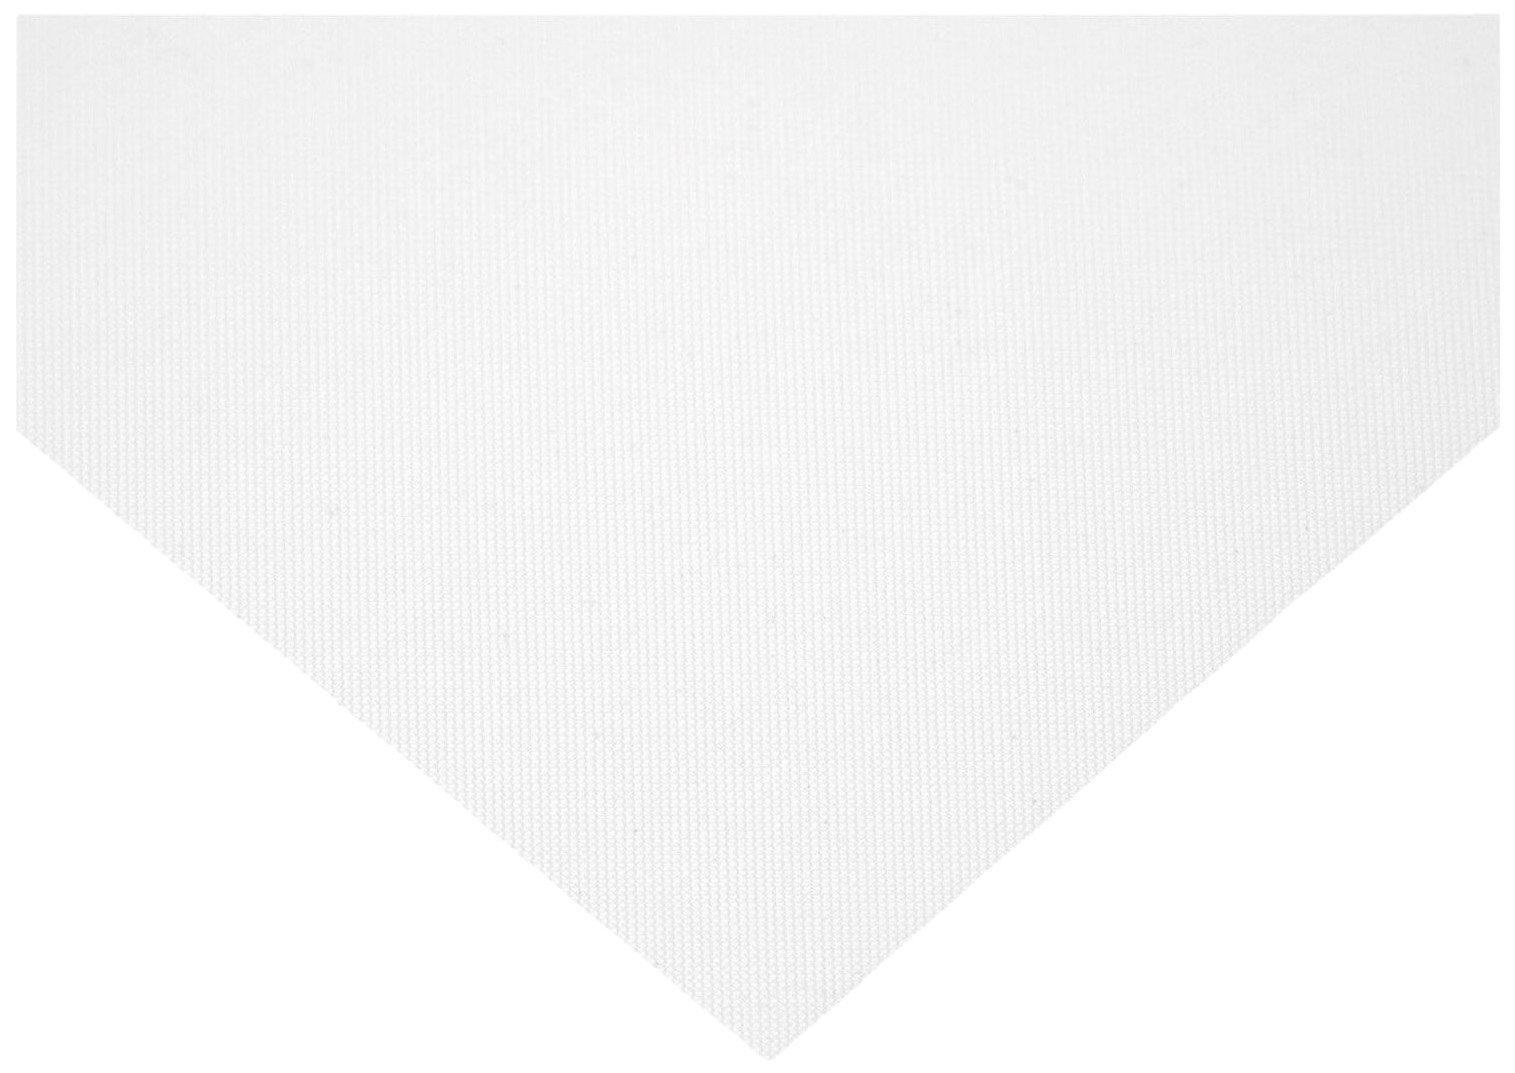 Nylon Mesh Lab Pak, 50 Microns Square Opening, 12'' x 12'', (Pack of 6) by Small Parts